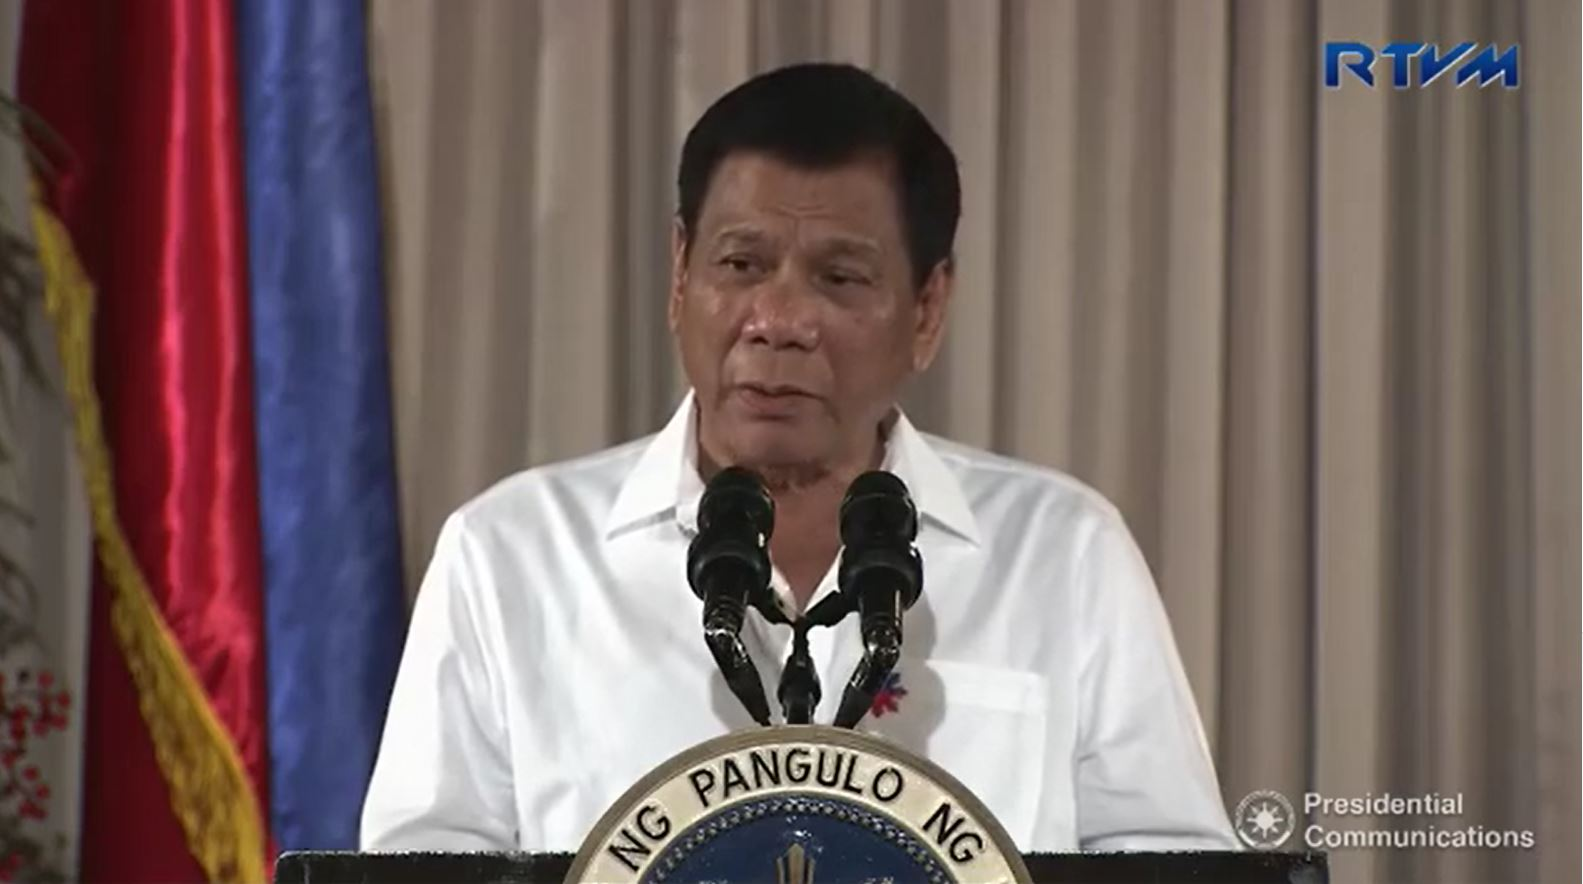 (File photo)   President Duterte will be leaving today, November 17, for Lima, Peru for the APEC Leaders' Summit where he is expected to meeti with Russian President Vladimir Putin. (Photo grabbed from RTVM video)